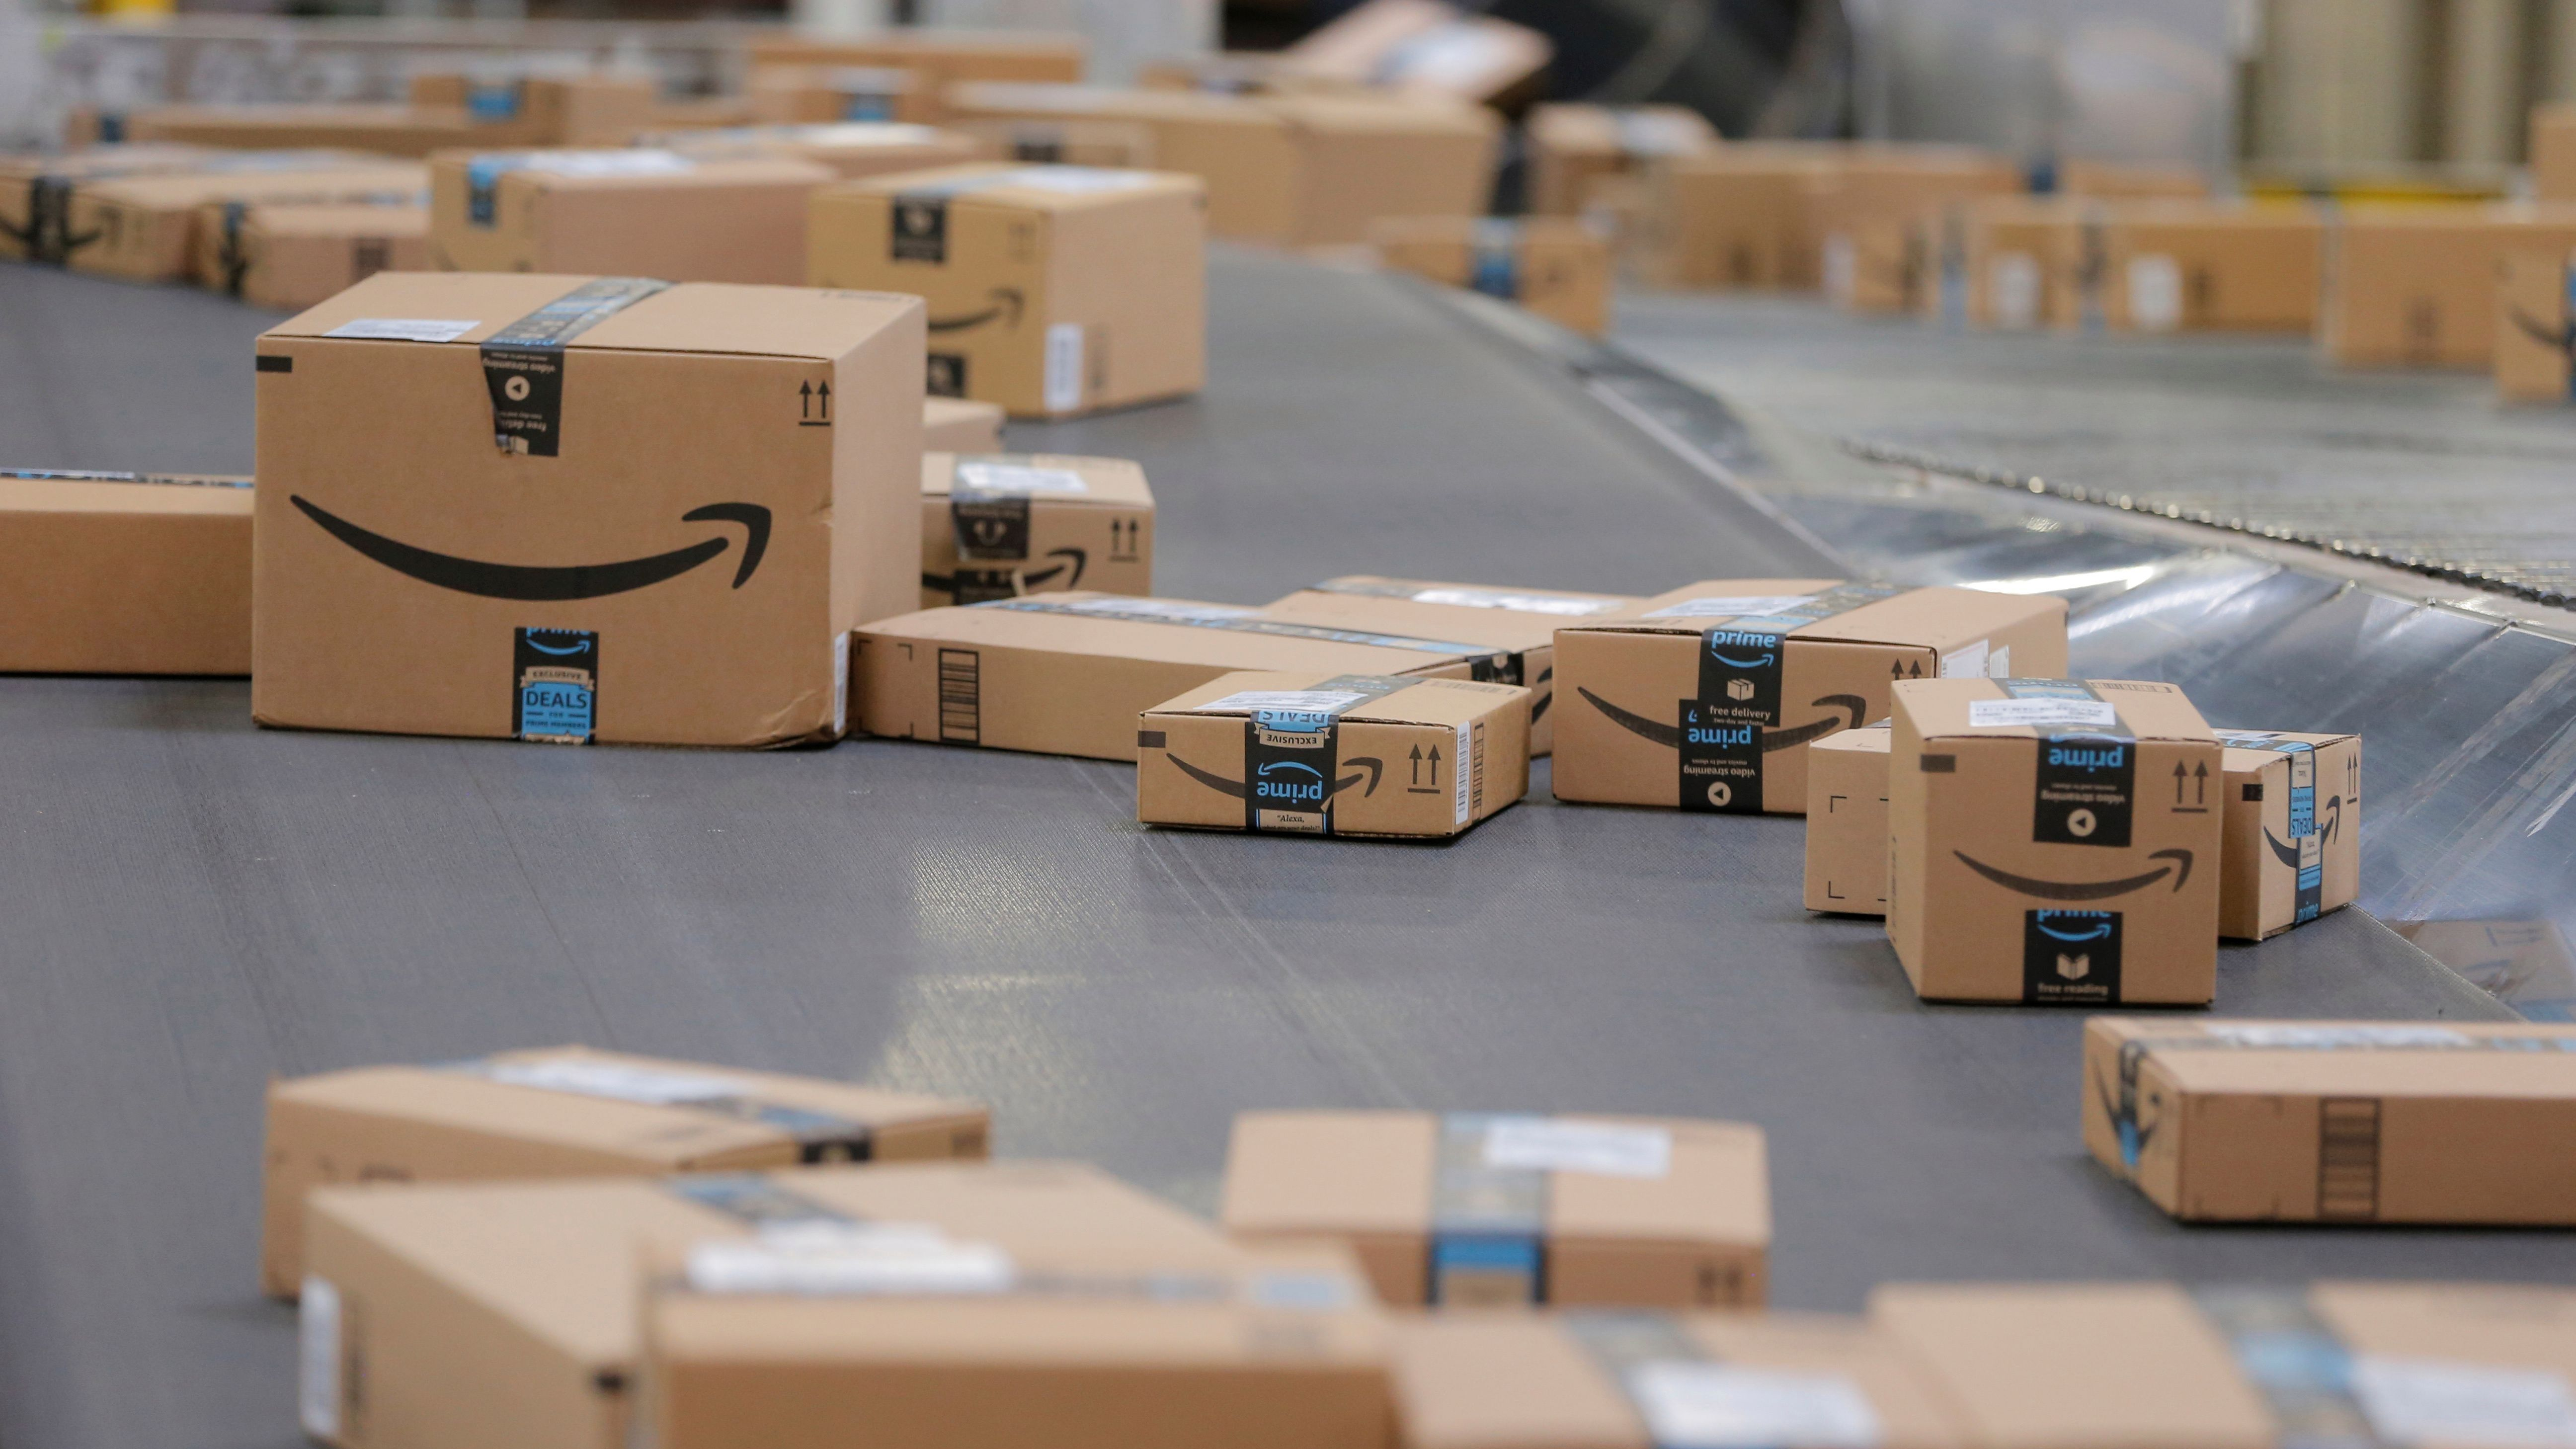 Amazon packages travel down a conveyor belt.